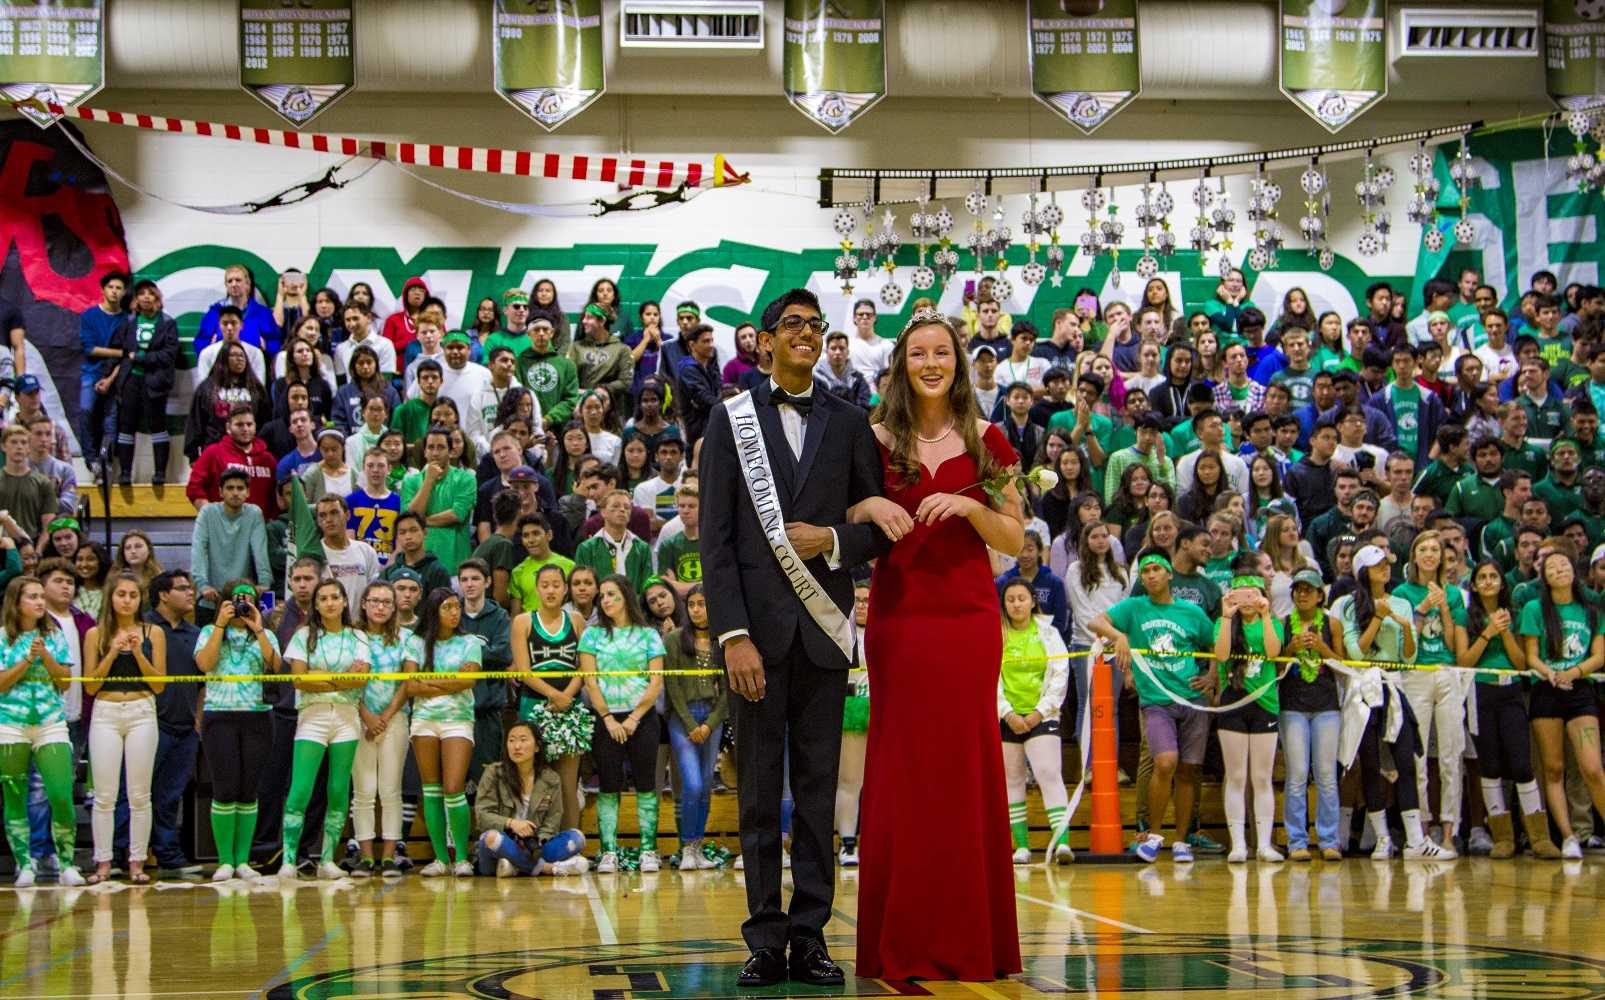 Homecoming+court+nominees+Tej+Gokhale+and+Elizabeth+Cook